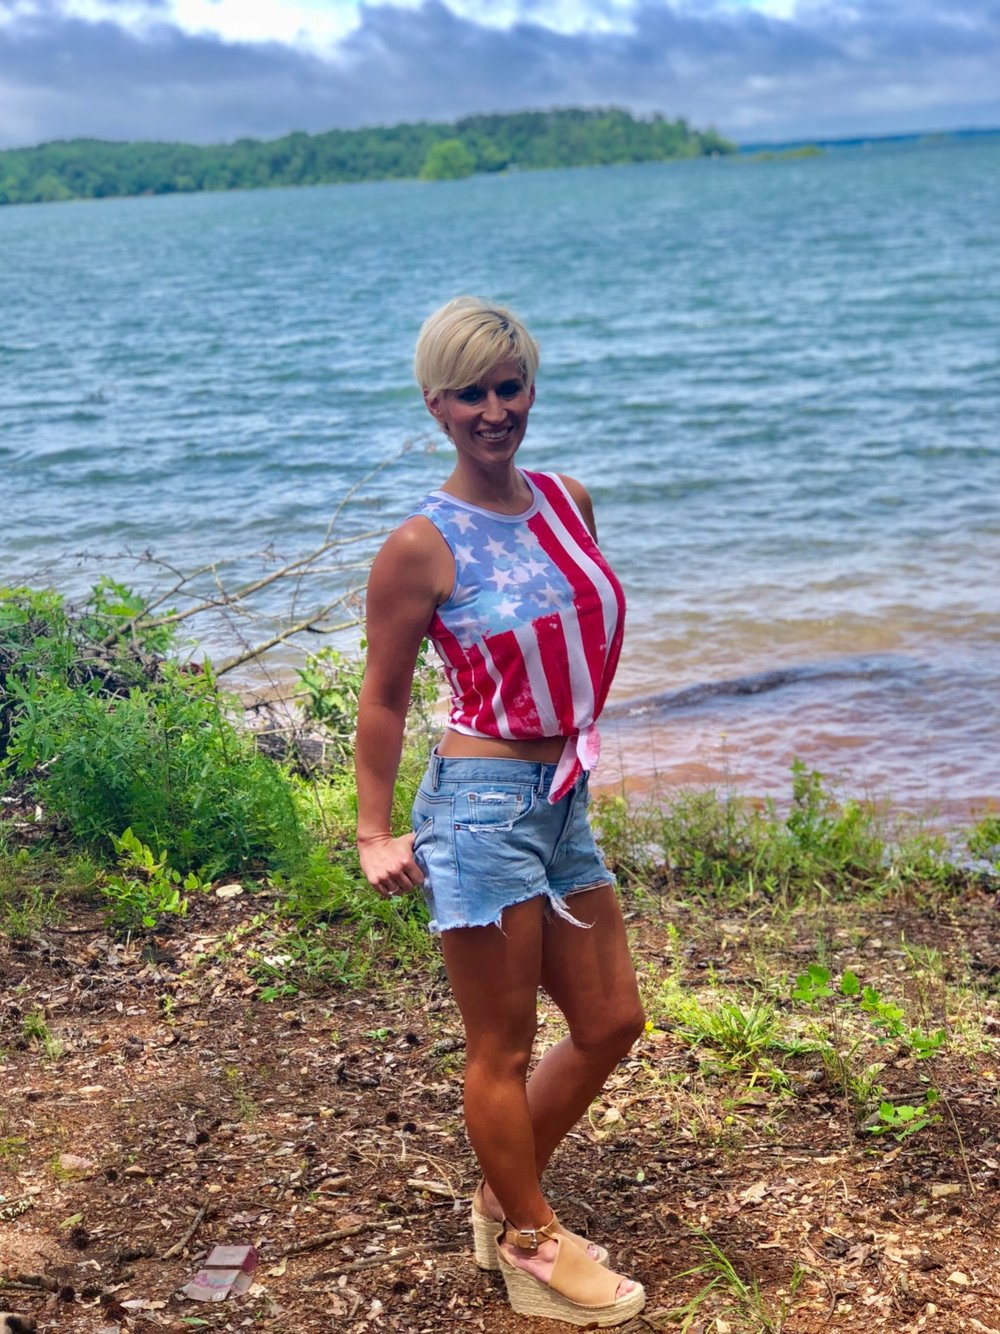 Home of the Red, White, & Blue. ALEXA ROBERTSON FITNESS.